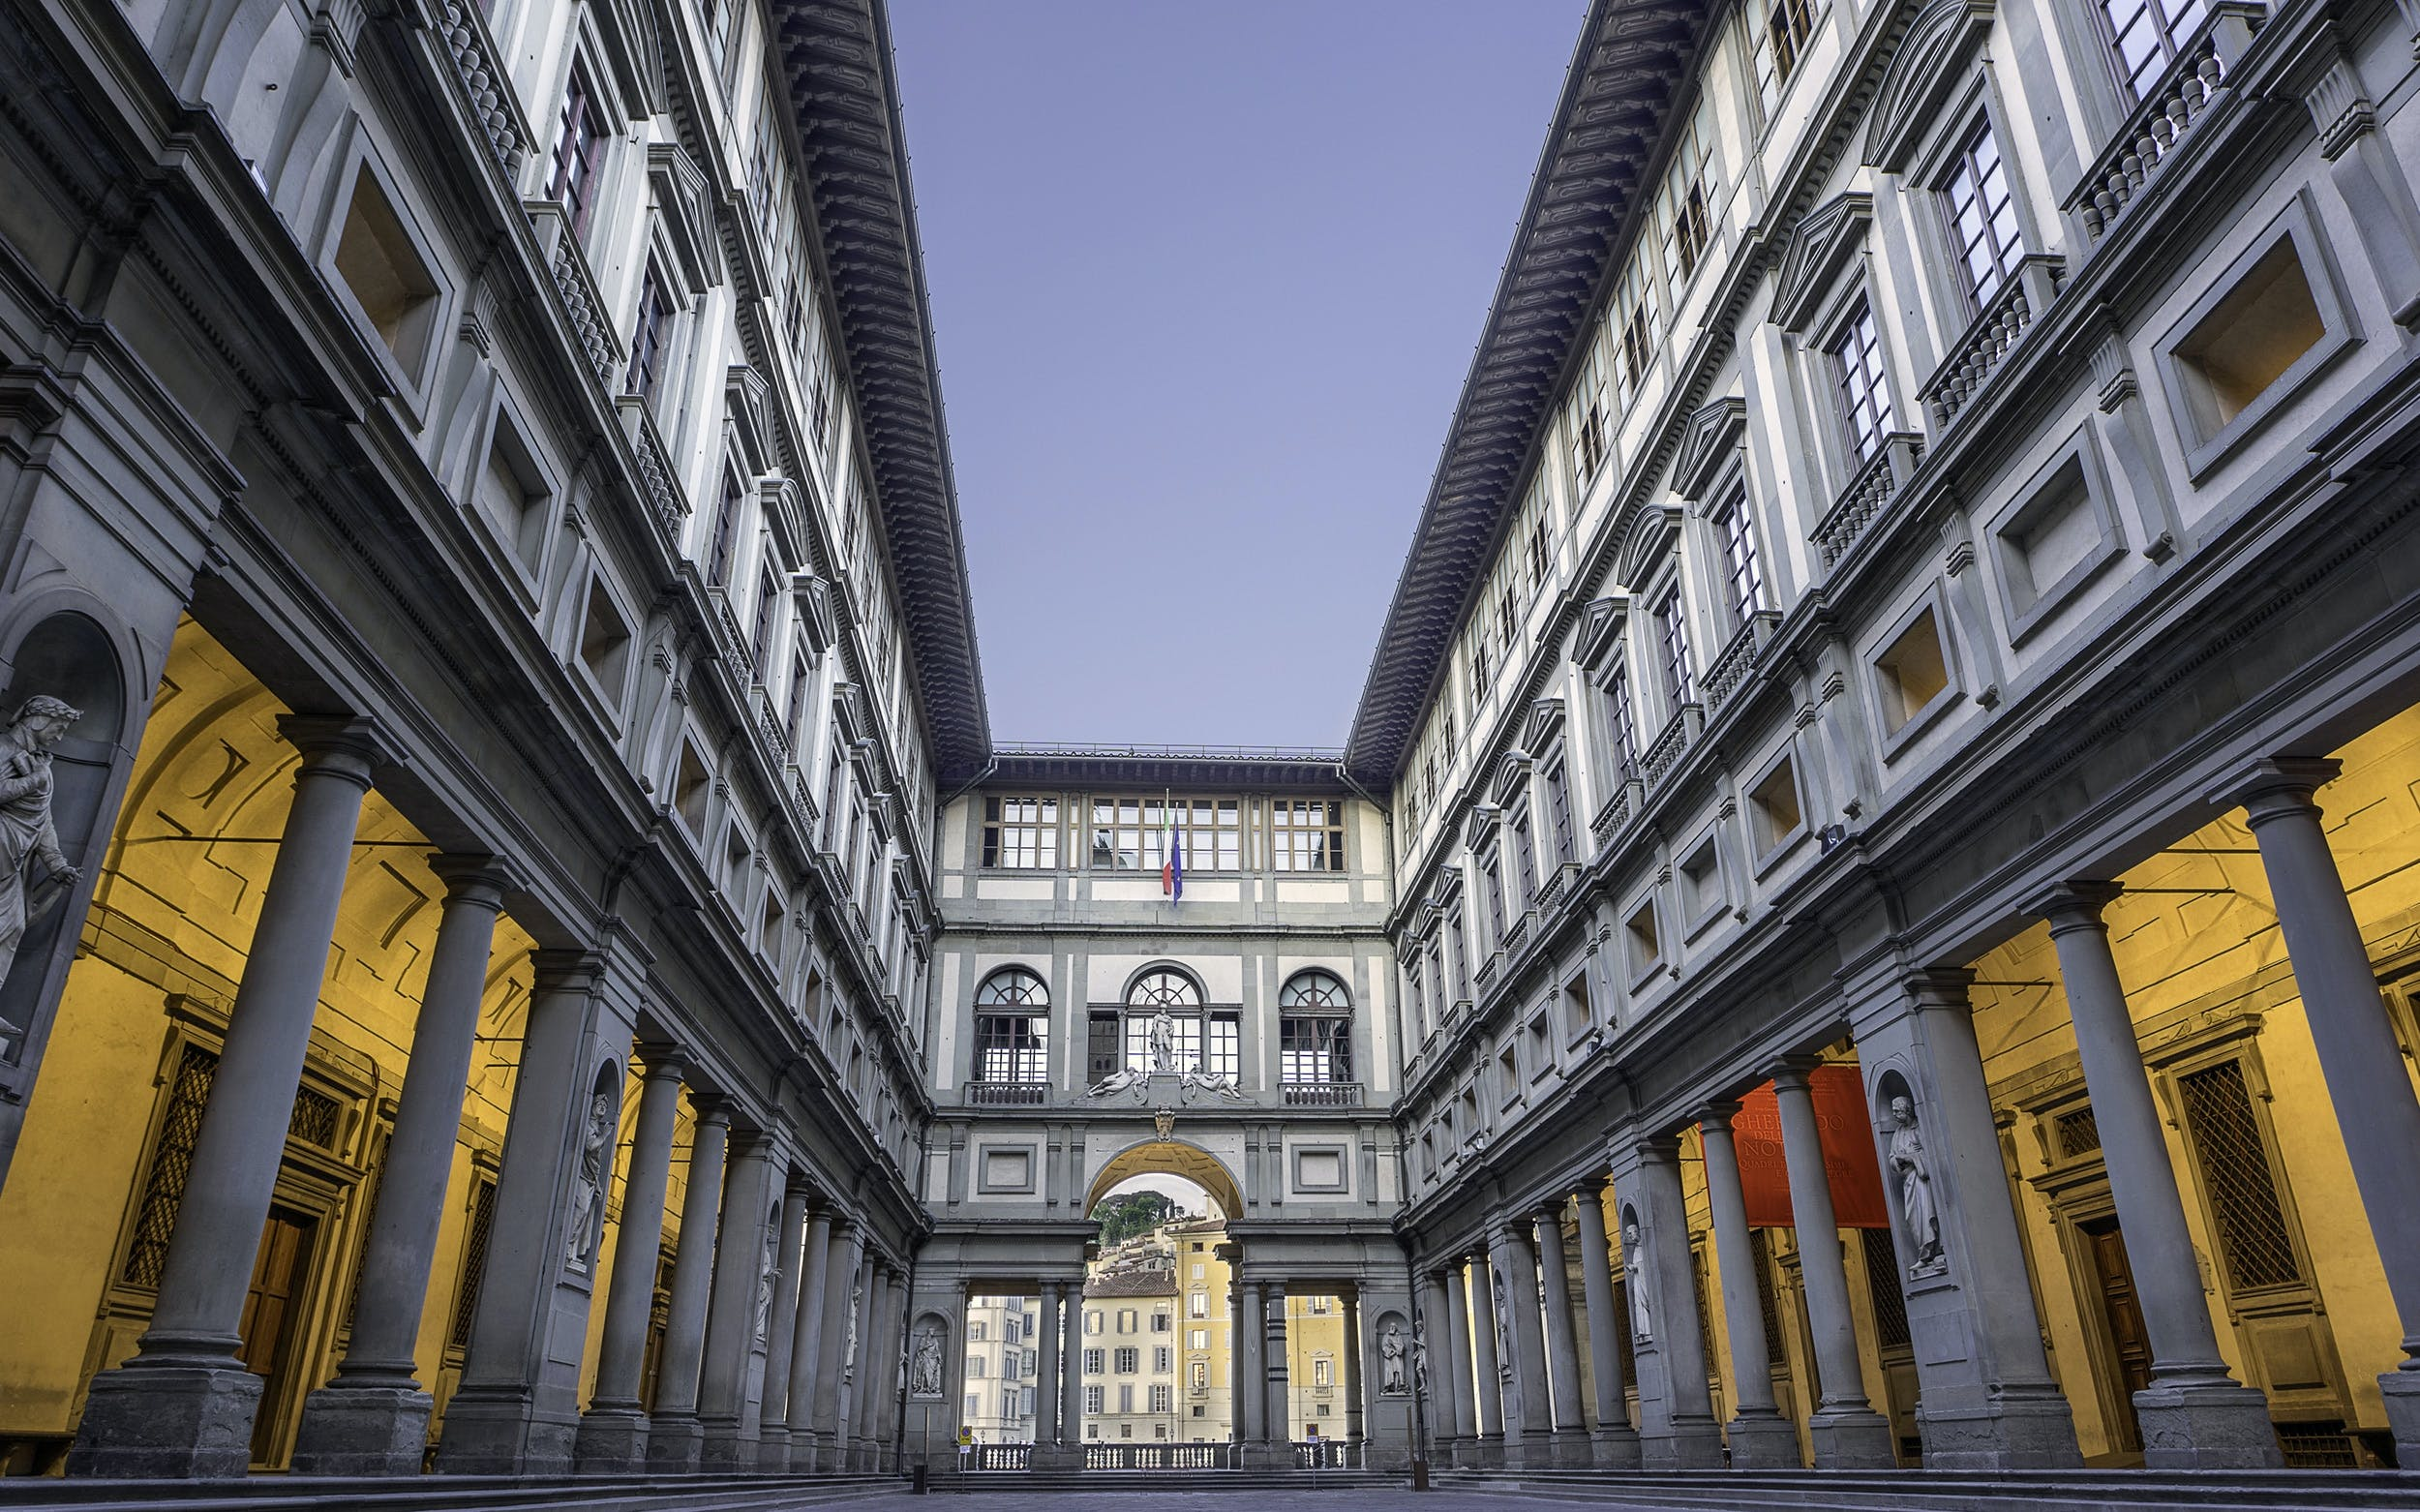 Uffizi Gallery Guided Tour With Skip The Line Tickets